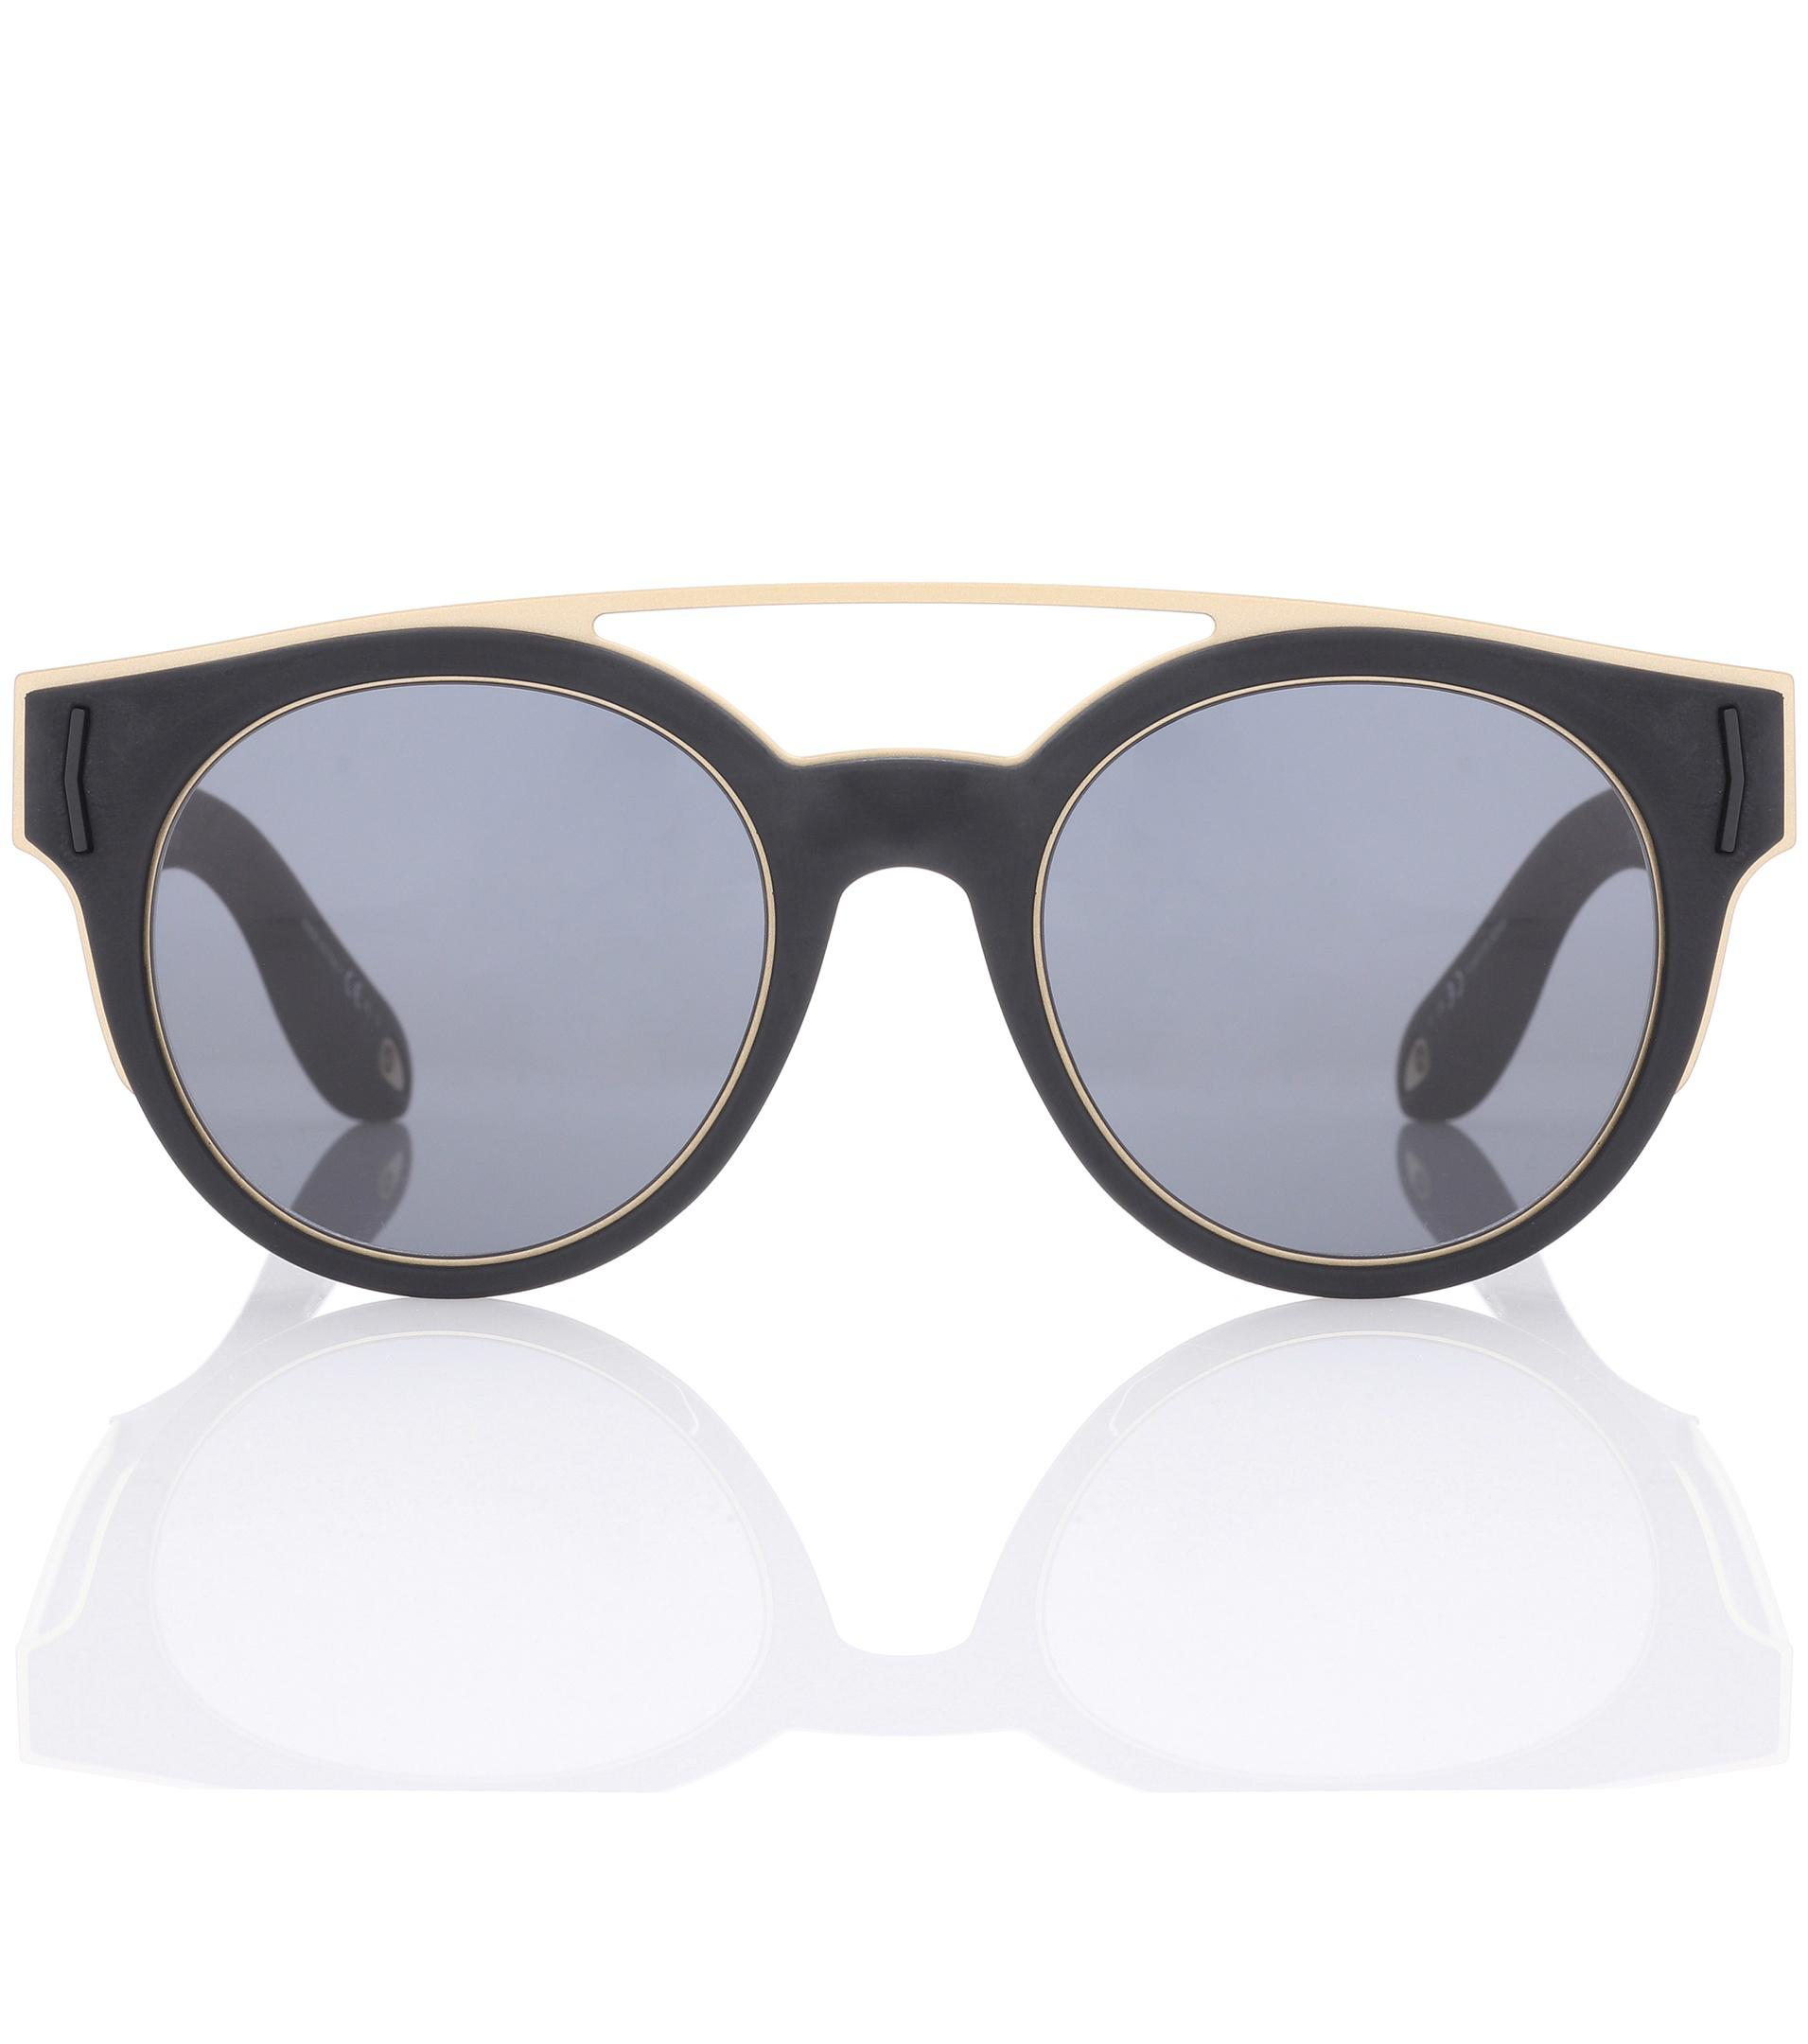 e4df053dcfe Lyst - Givenchy Round Sunglasses in Black